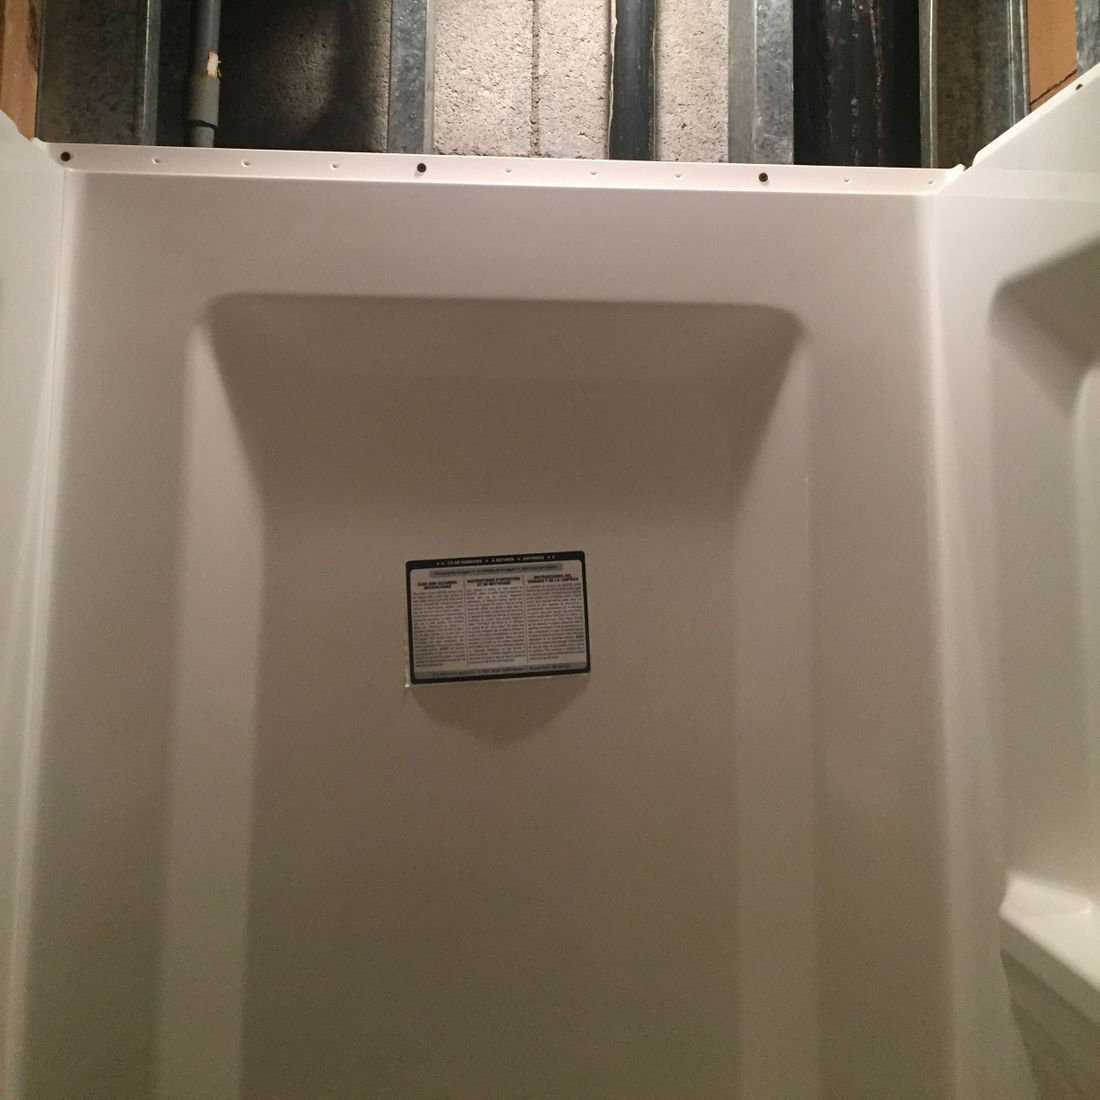 Replaced With New Shower Pan & Direct To Framing Shower Surround